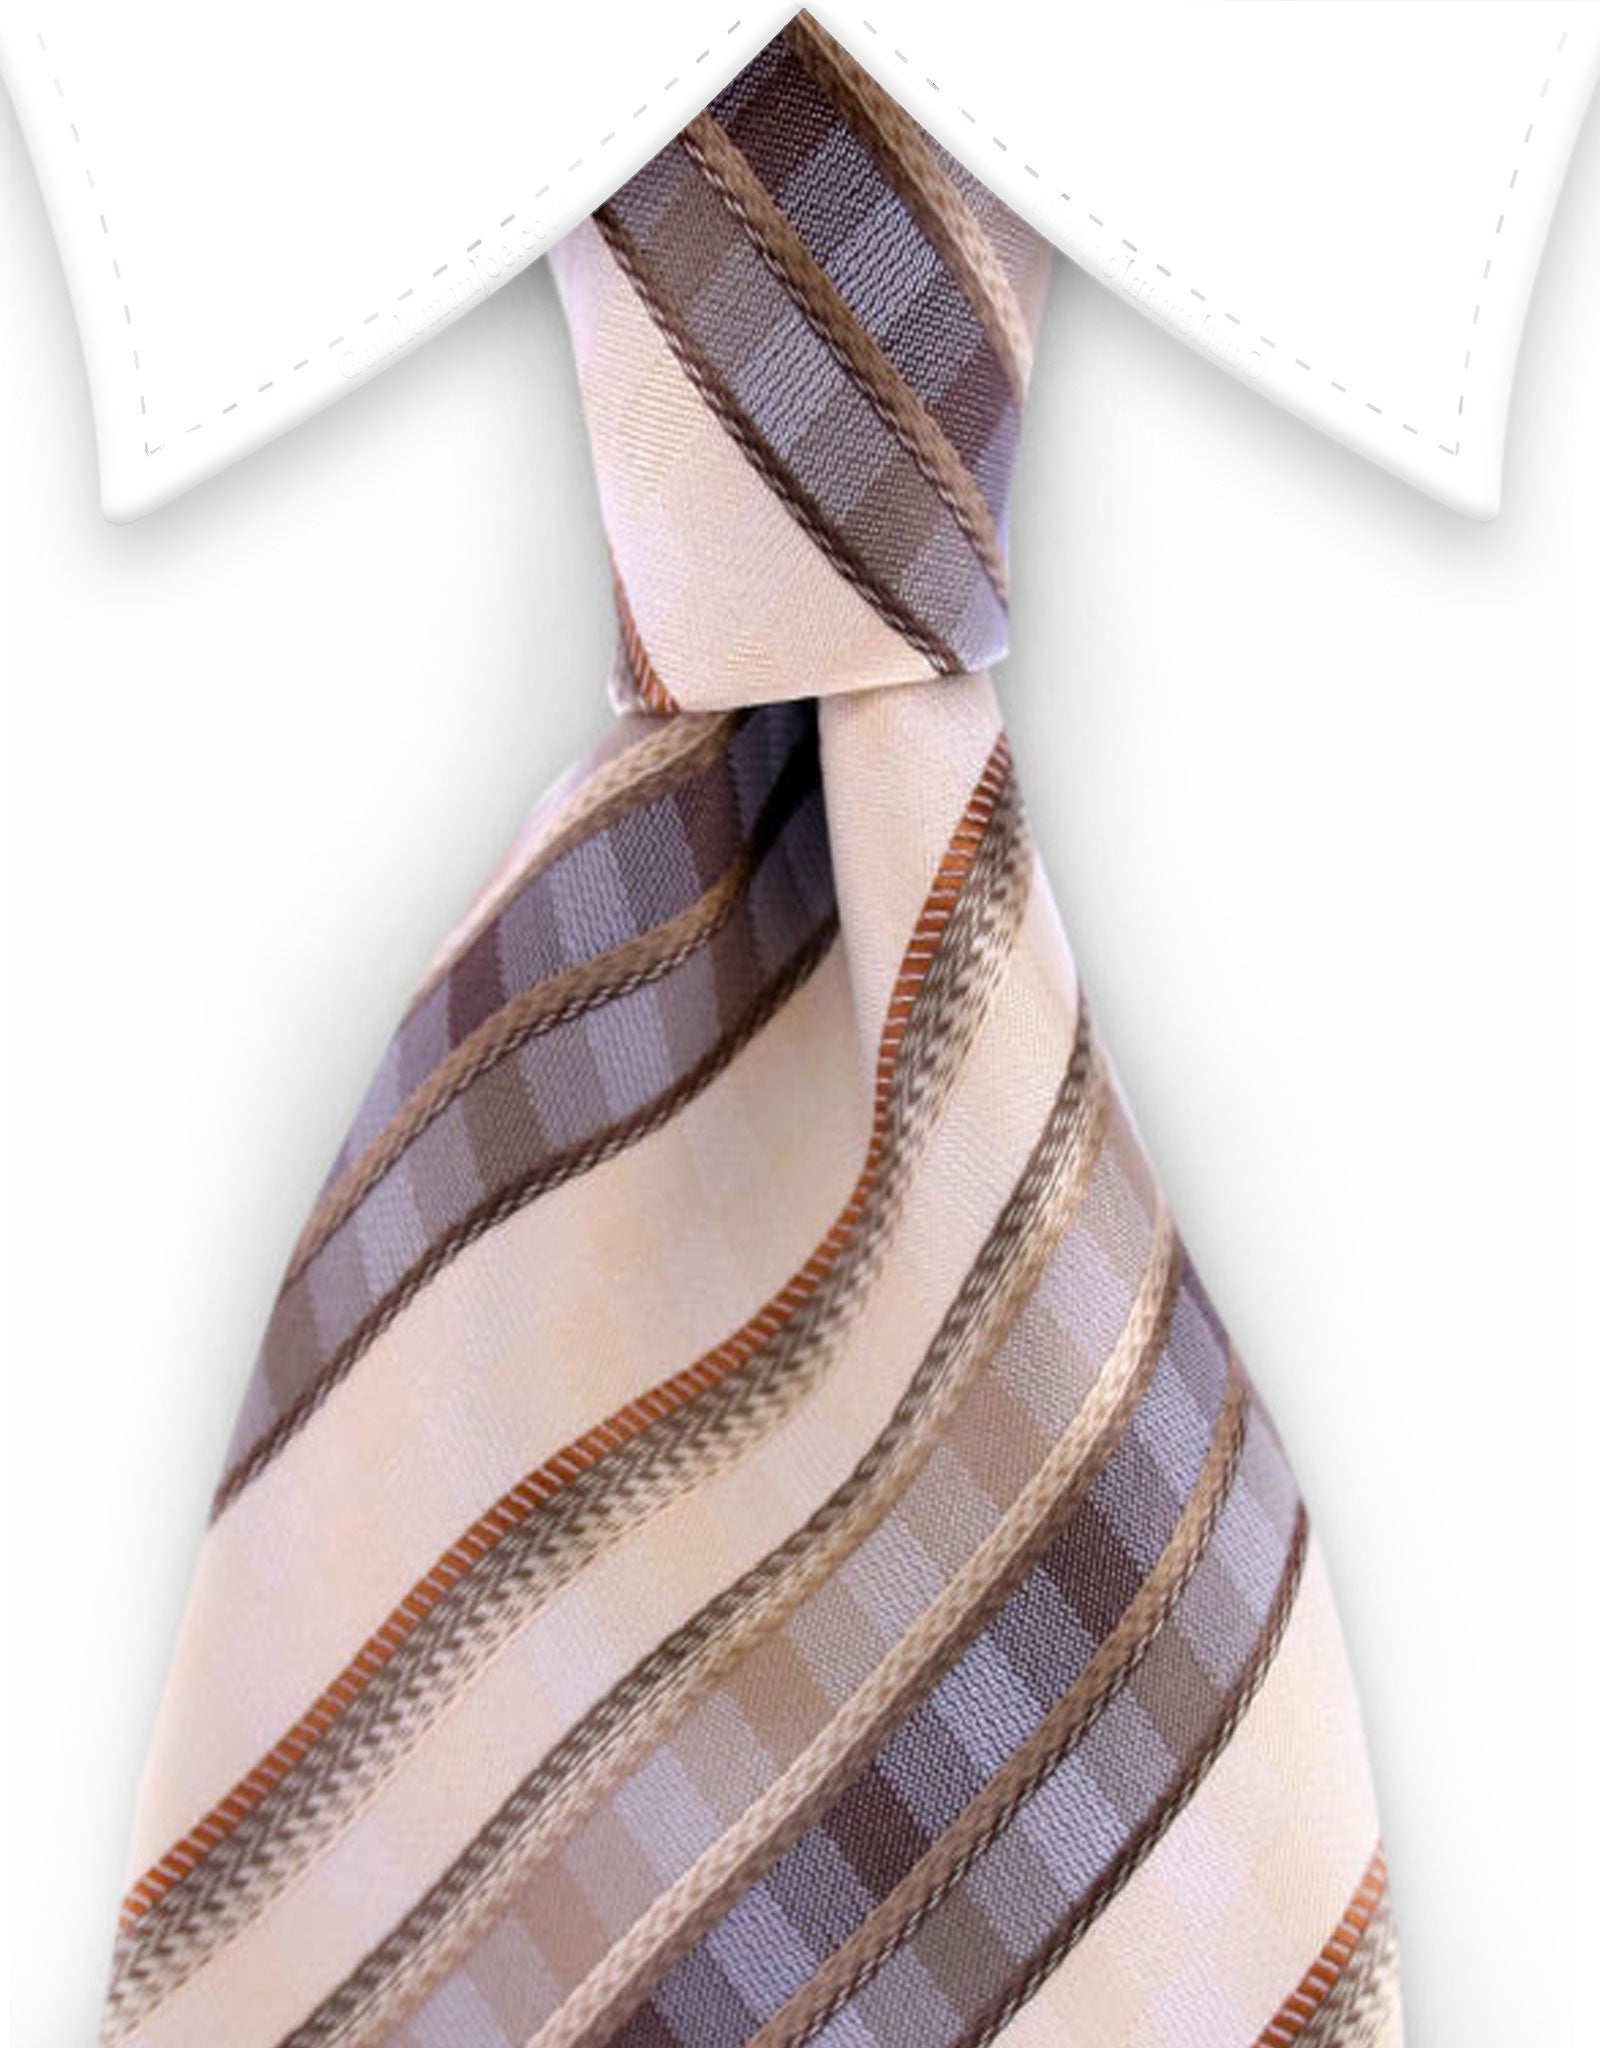 Brown & Beige Striped Necktie